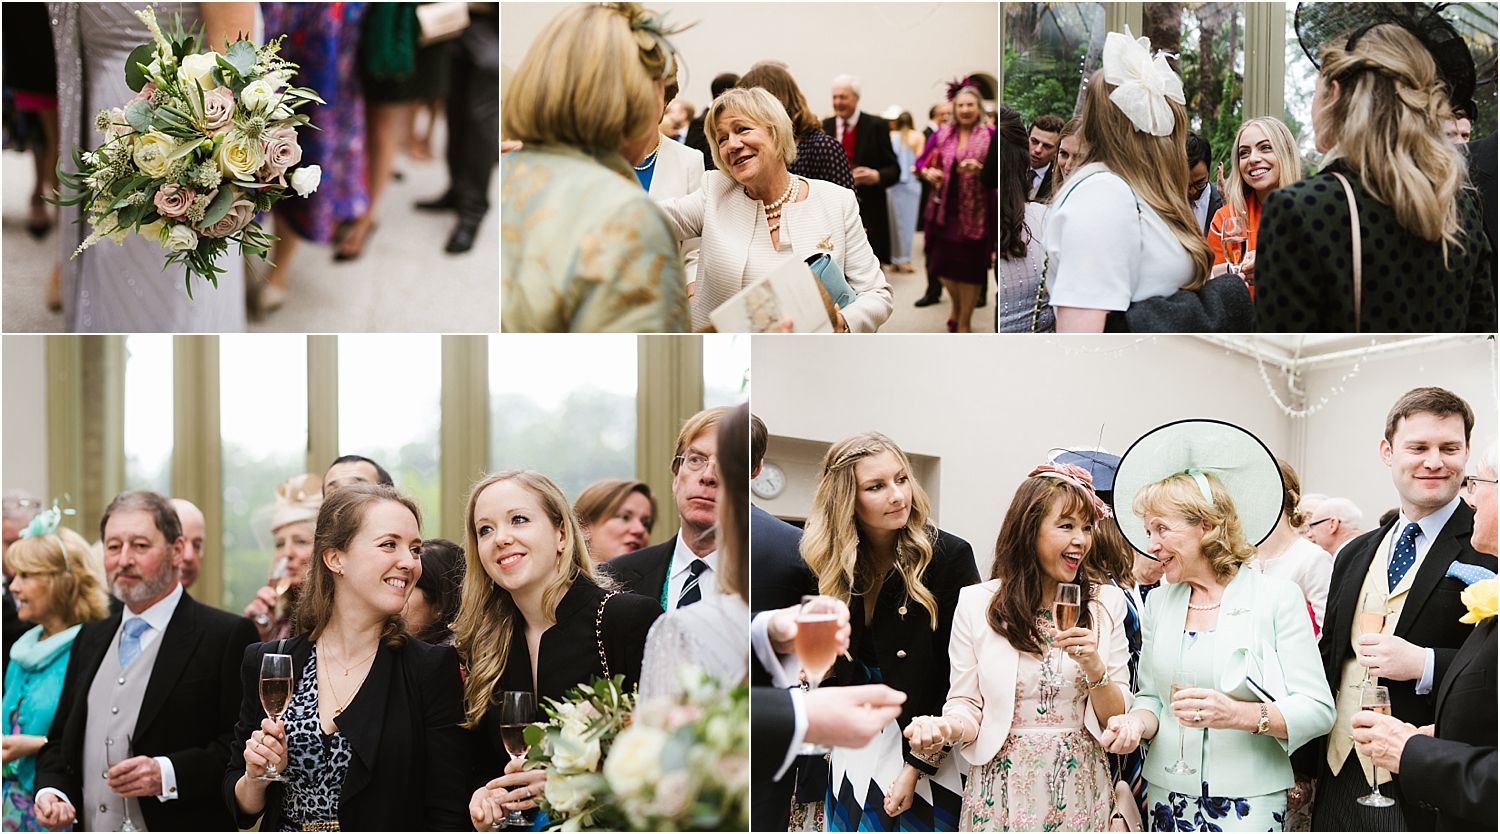 Happy guests mingling at Hampton Court House wedding